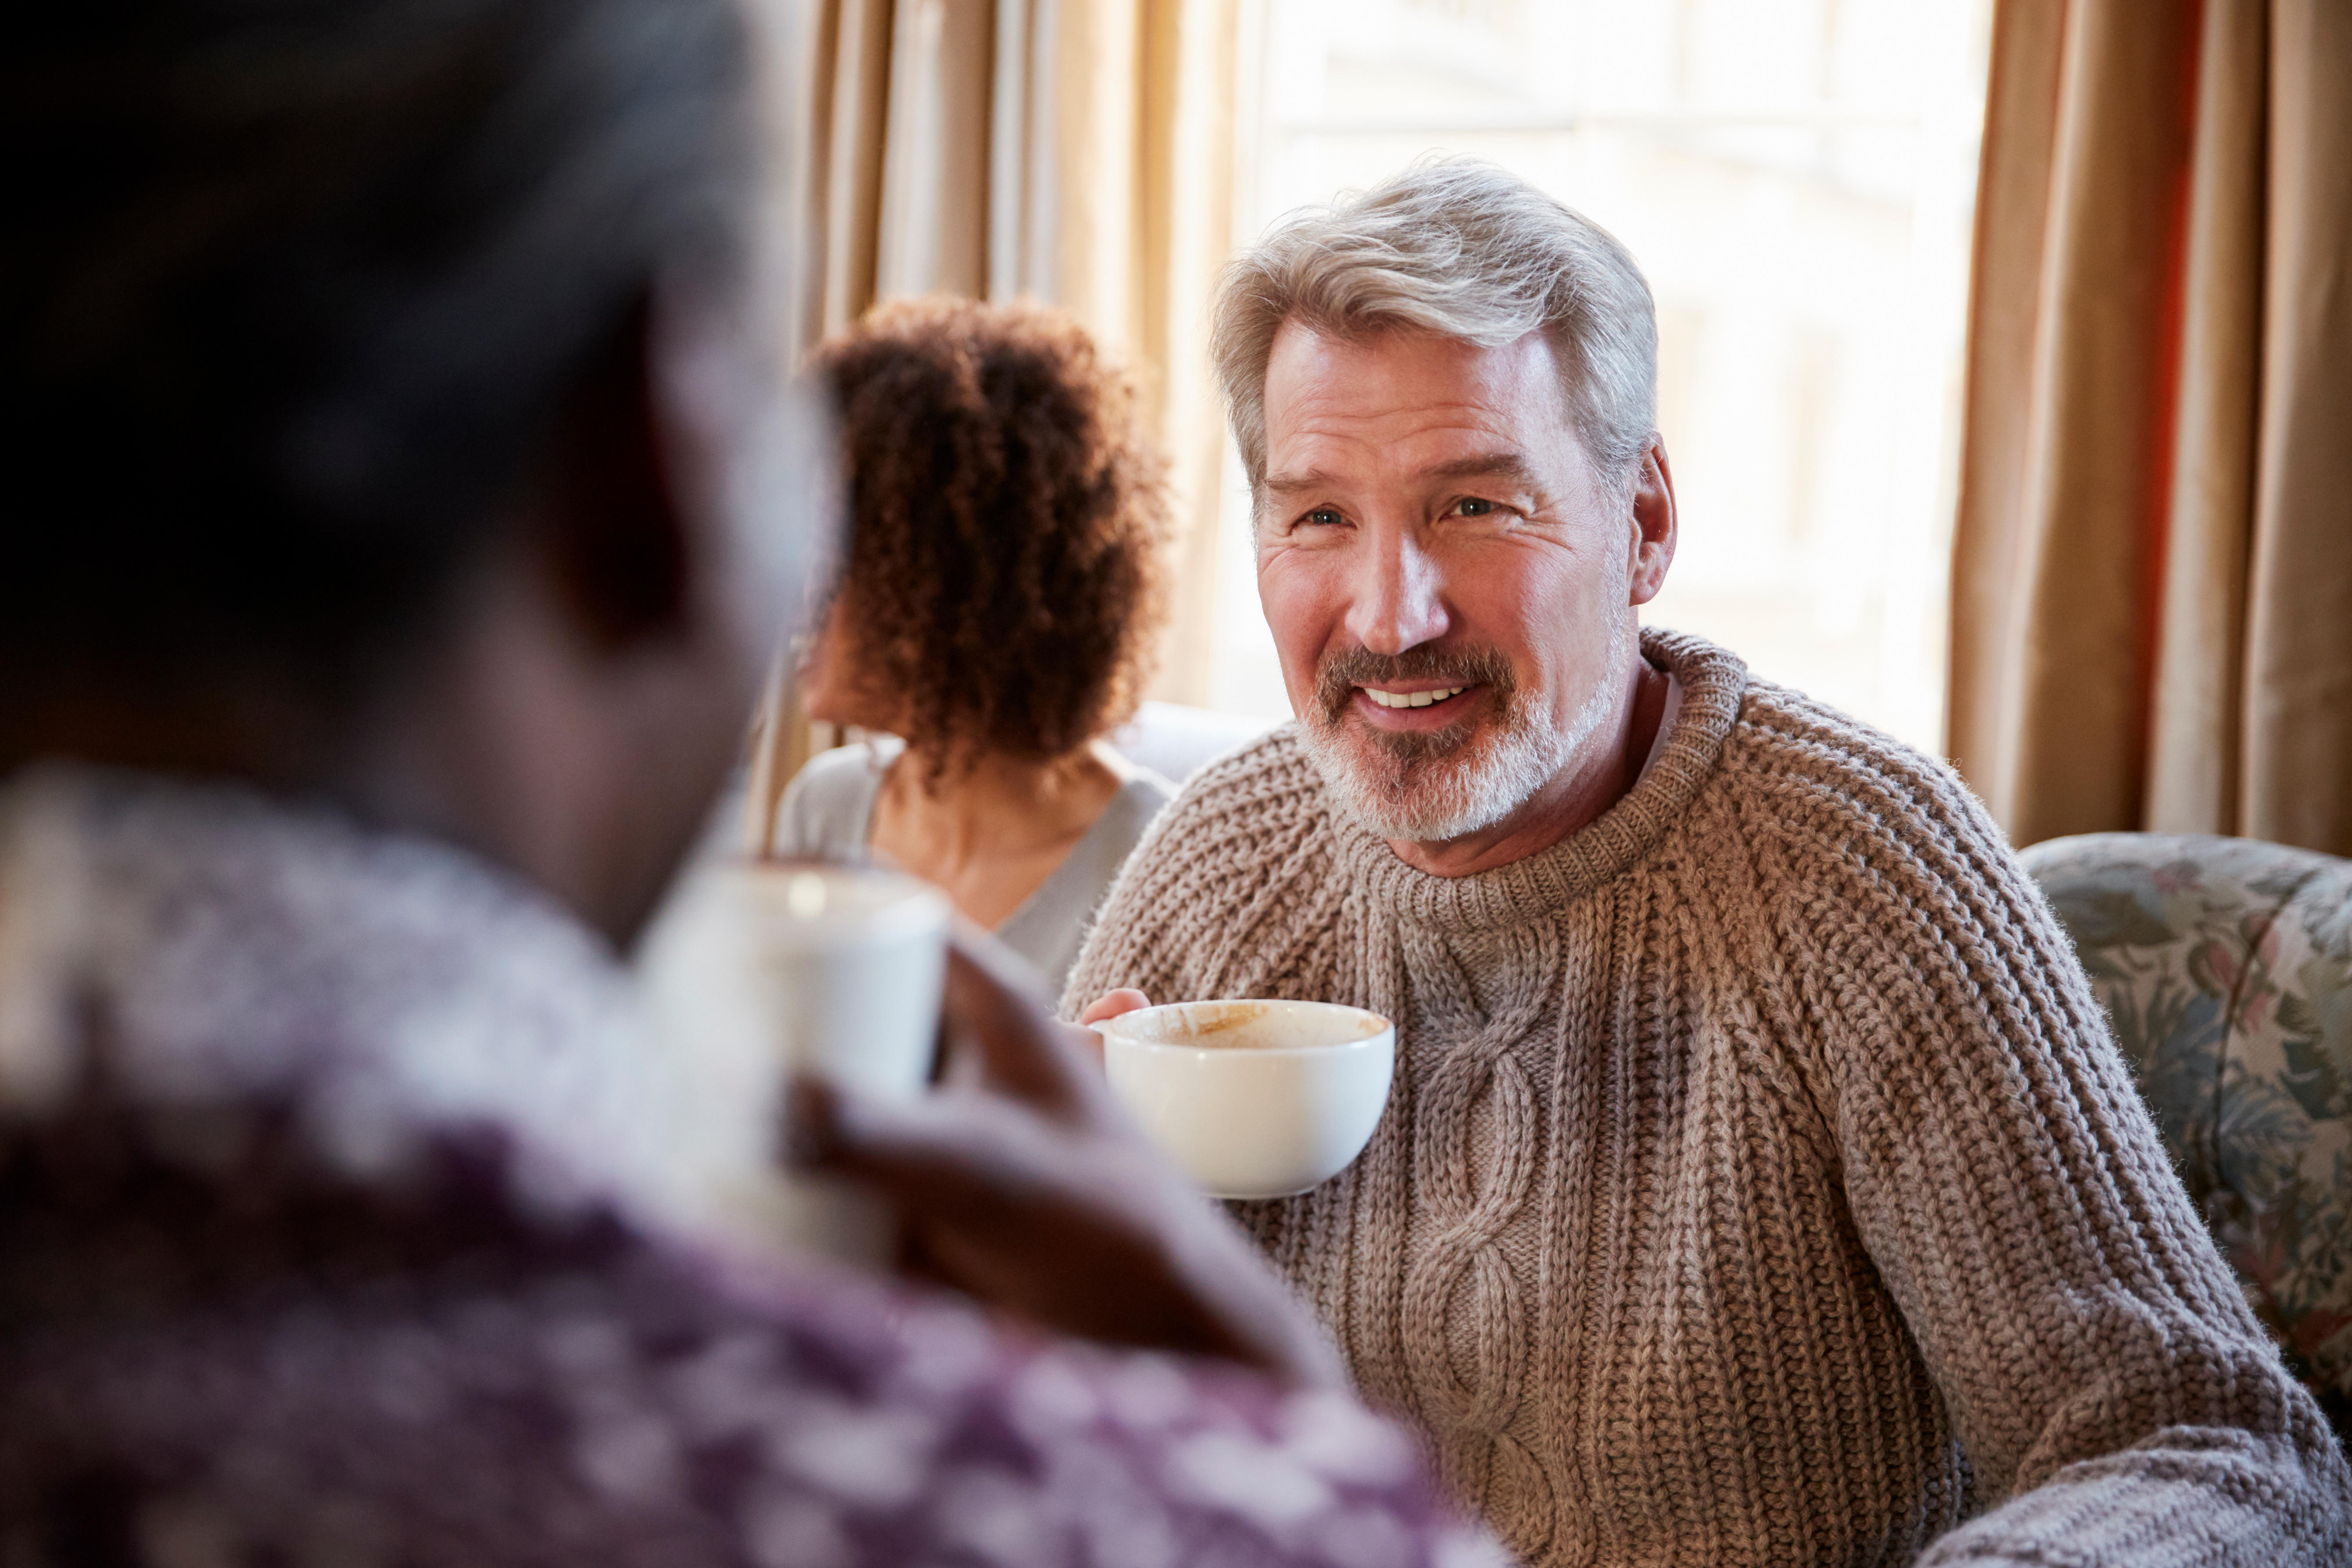 Mature man drinking coffee with a friend